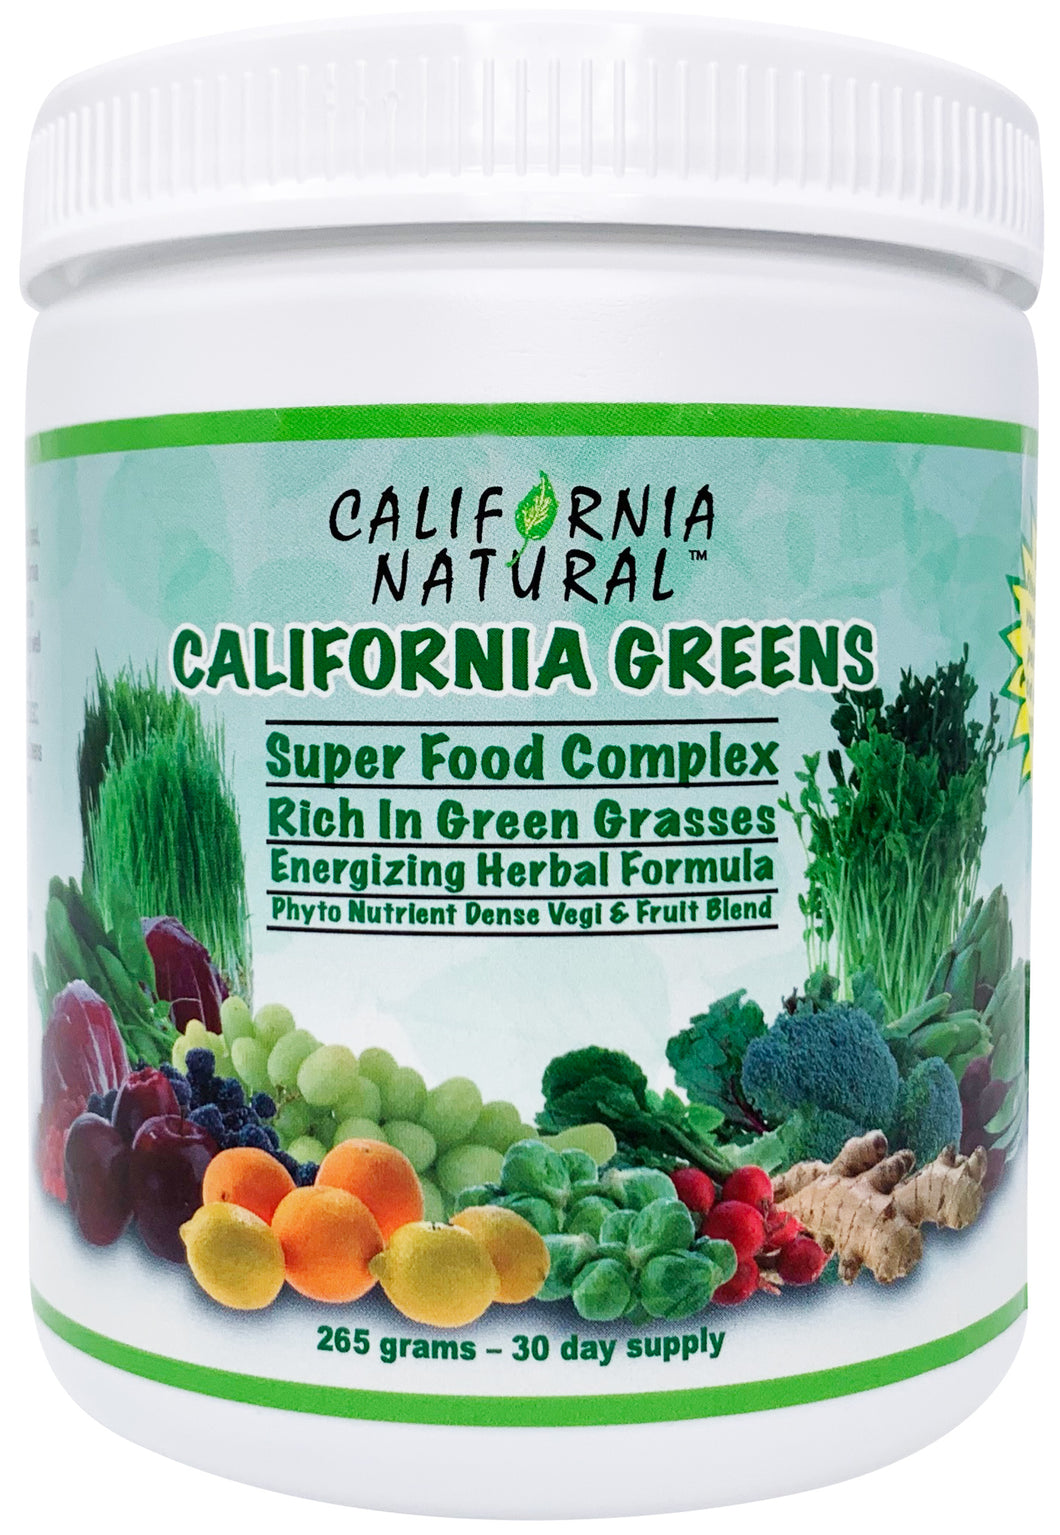 California Greens